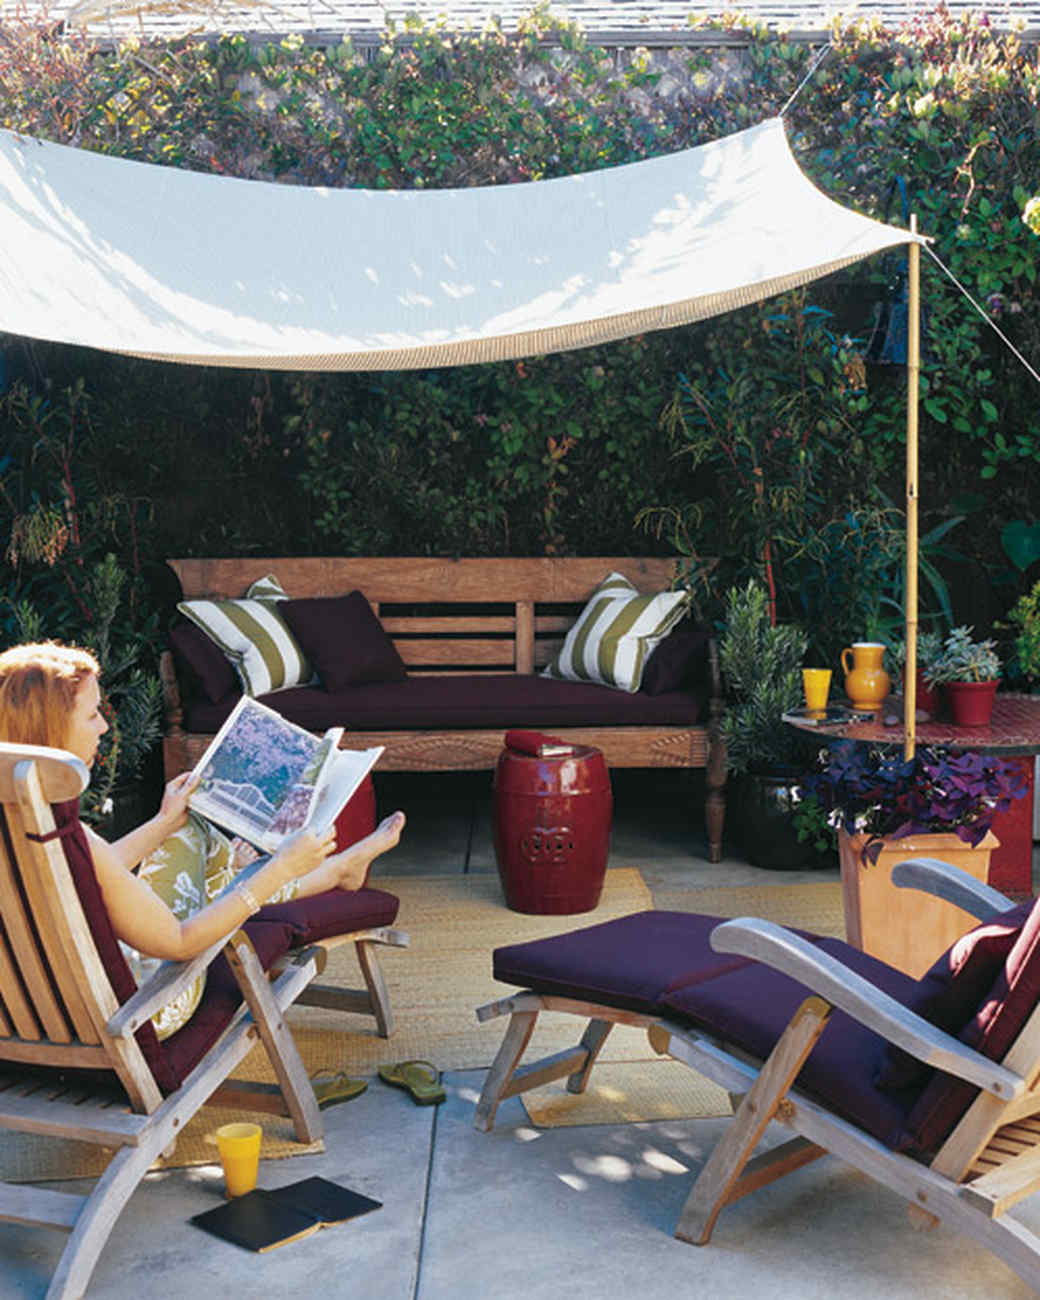 a slice of shade: creating canopies | martha stewart